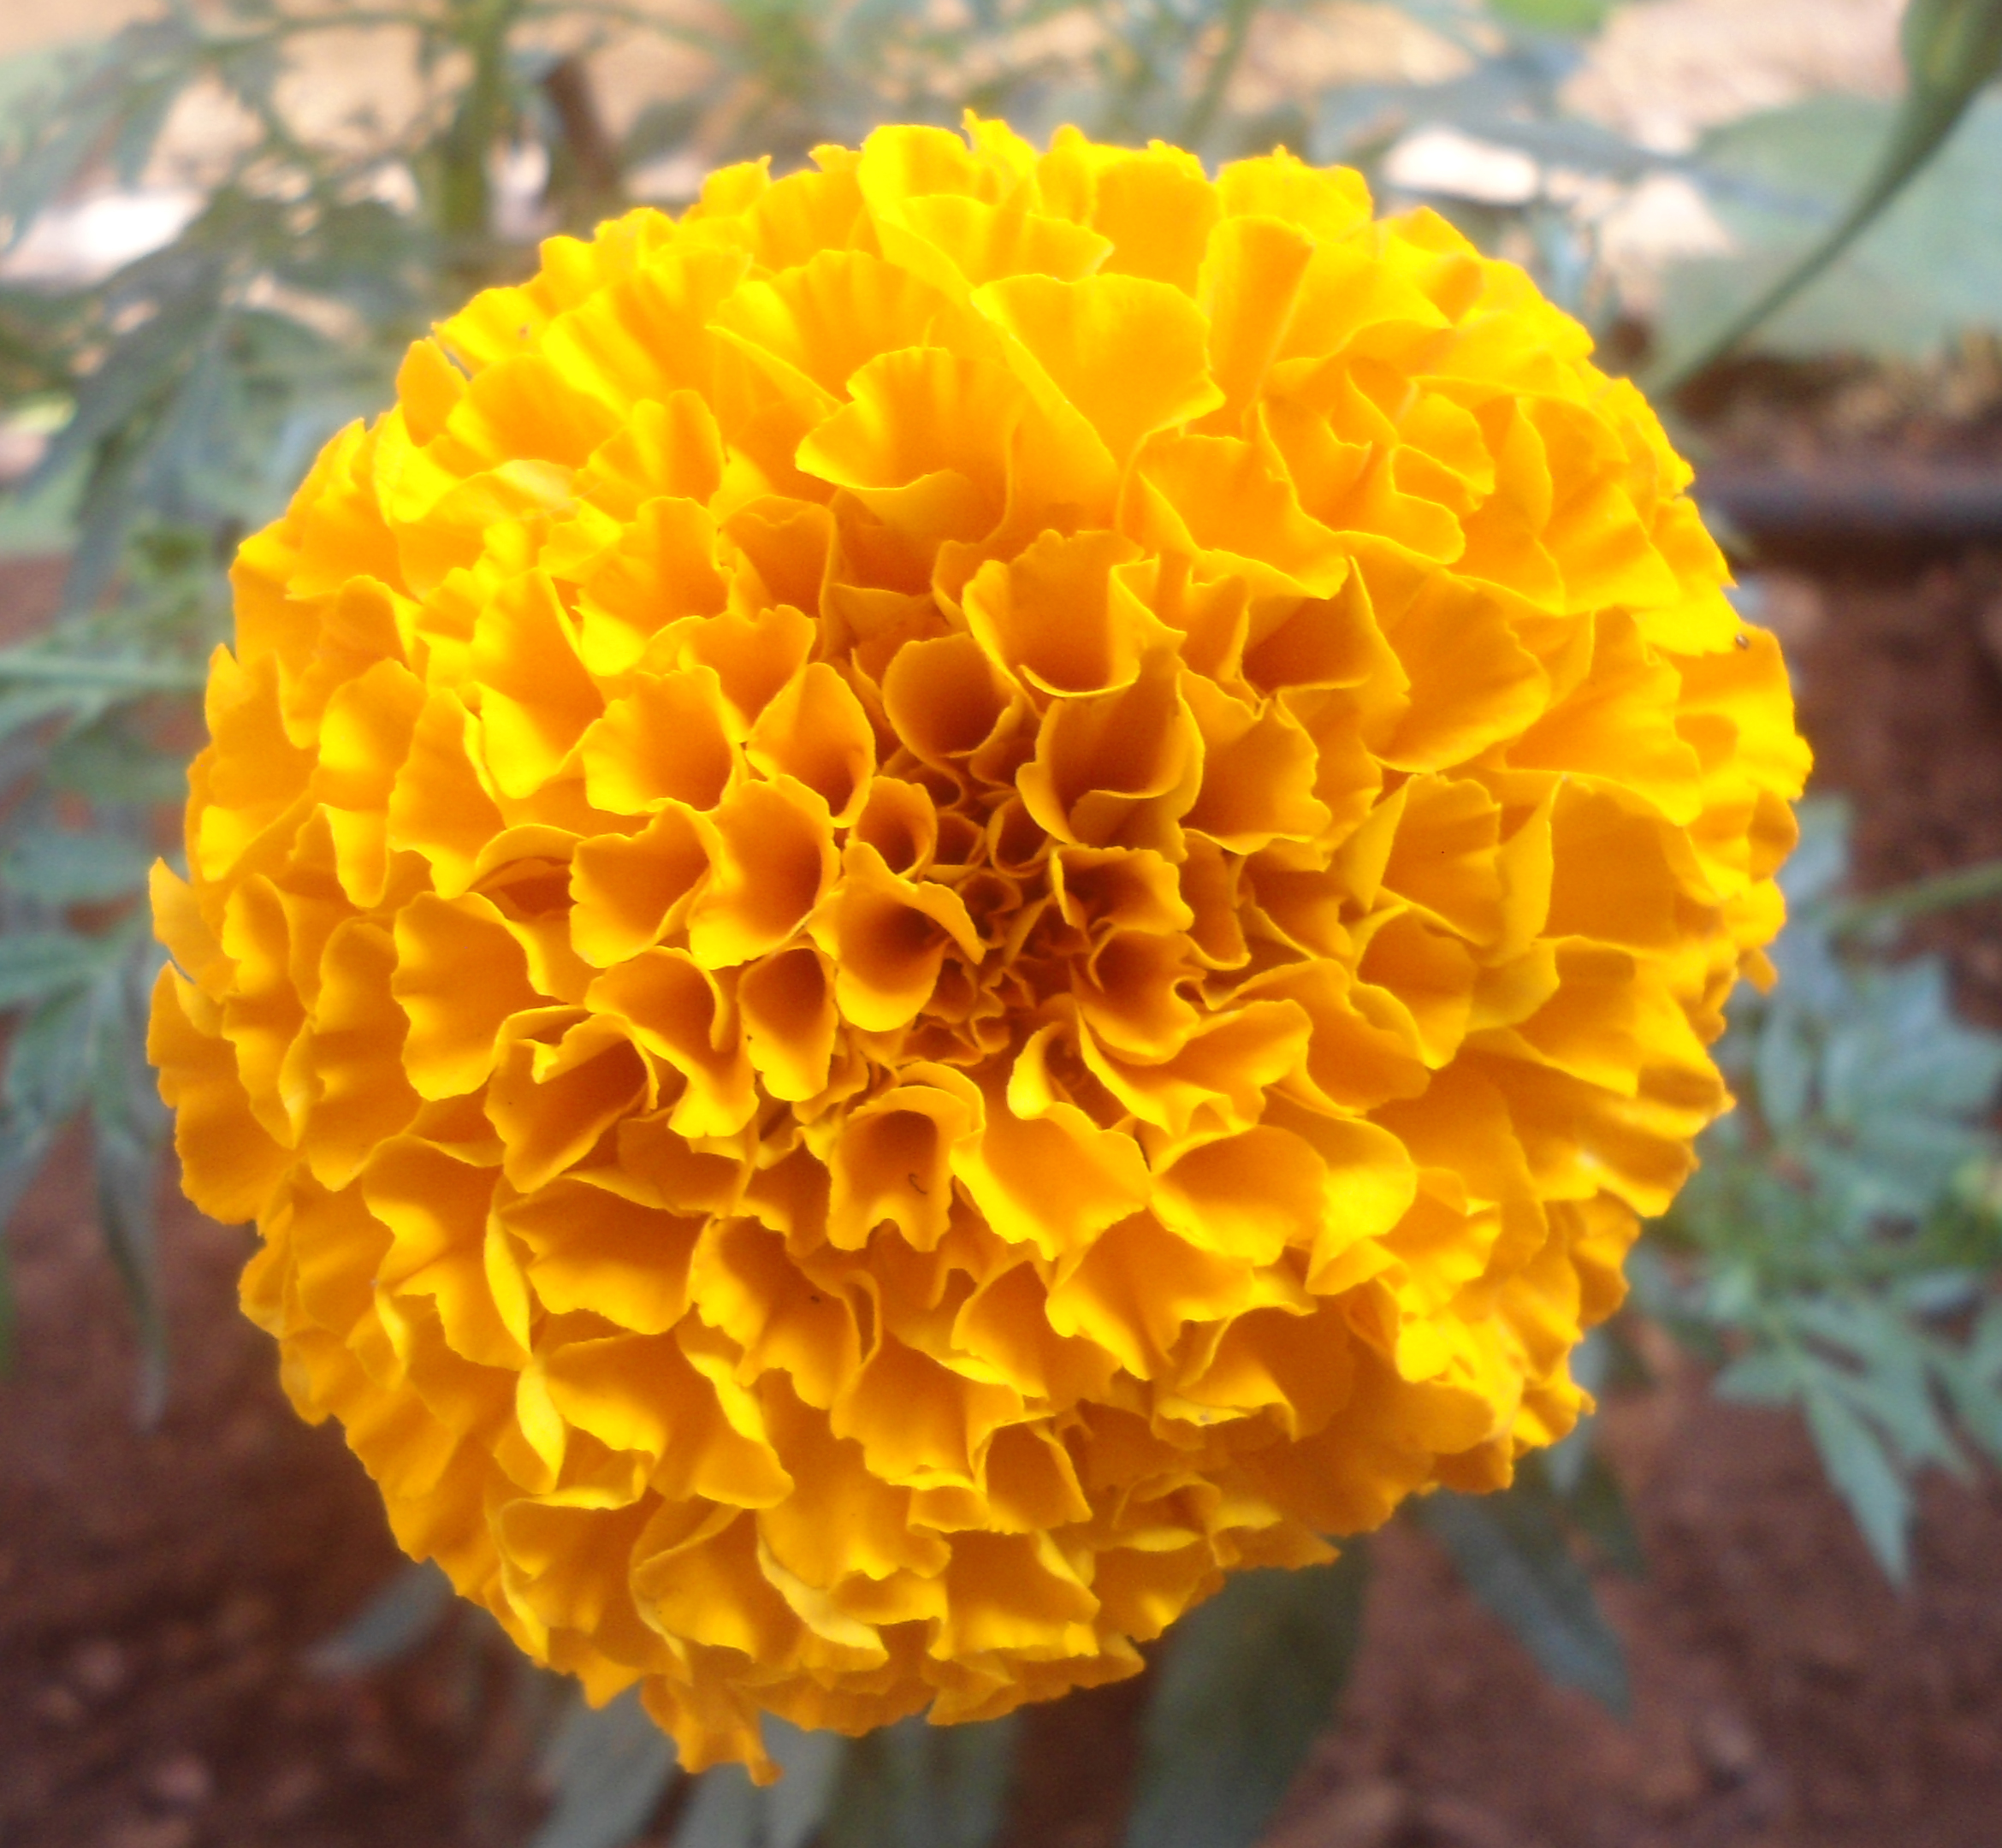 File Ta es erecta Marigold flower at Madhurawada 03 JPG